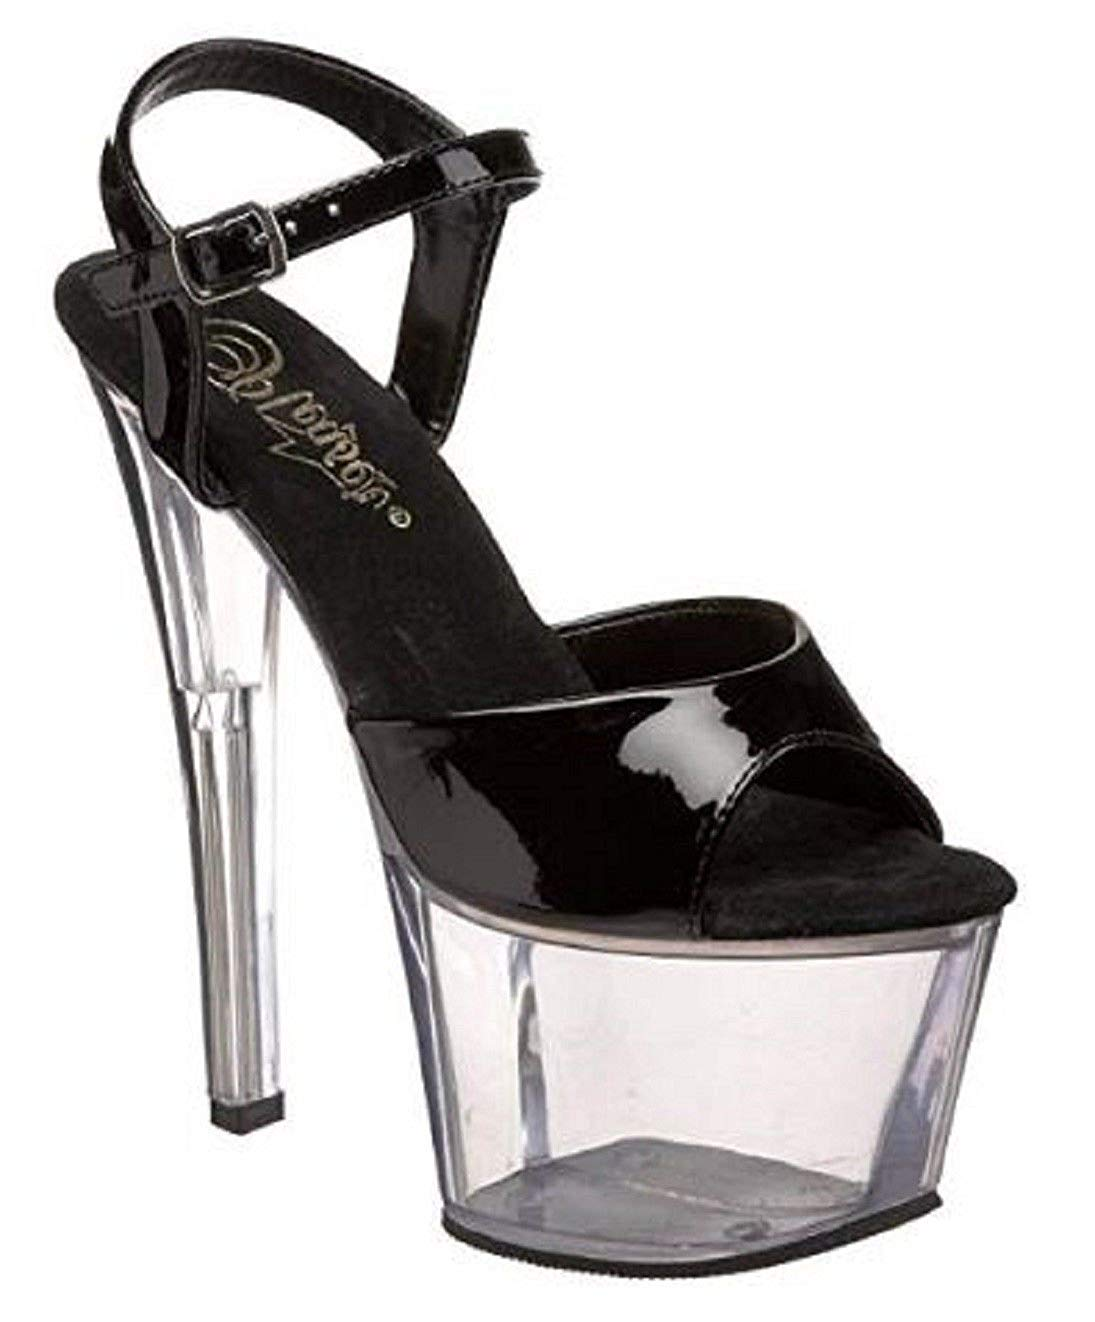 Discounted stripper shoes